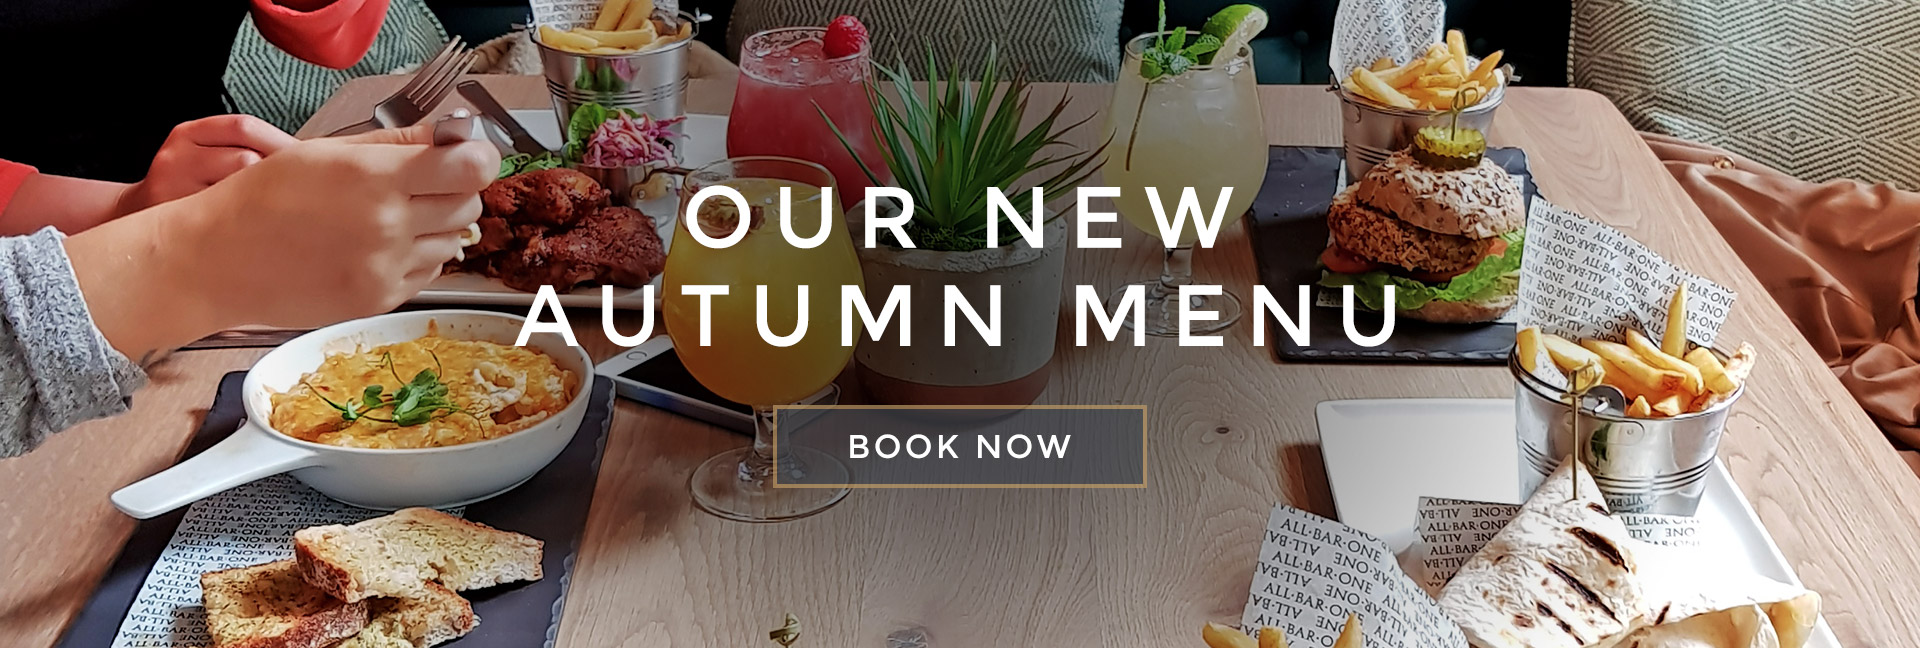 Our new Autumn menu at All Bar One Harrogate - Book now